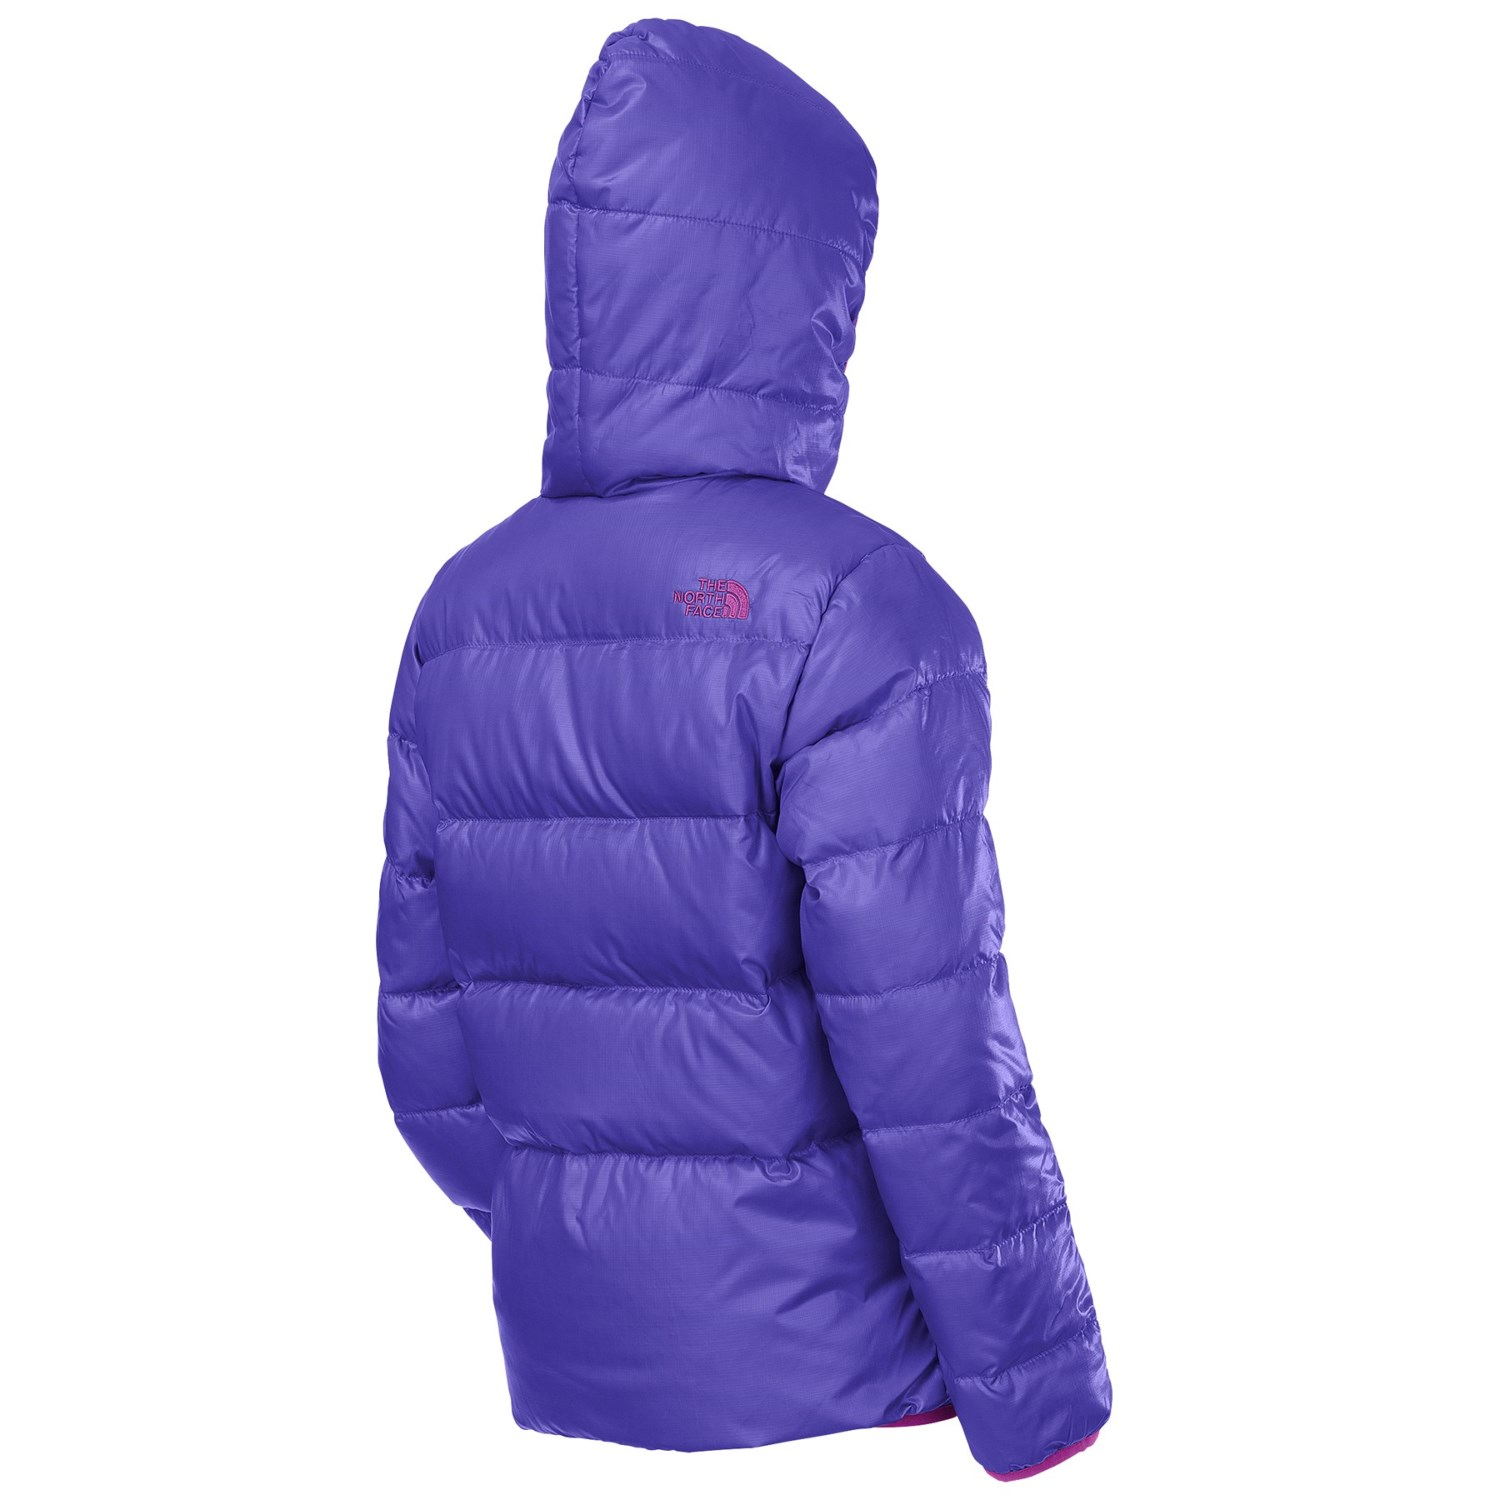 28221d8ac226 ... new style the north face moondoggy down jacket reversible 550 fill  power for little and big